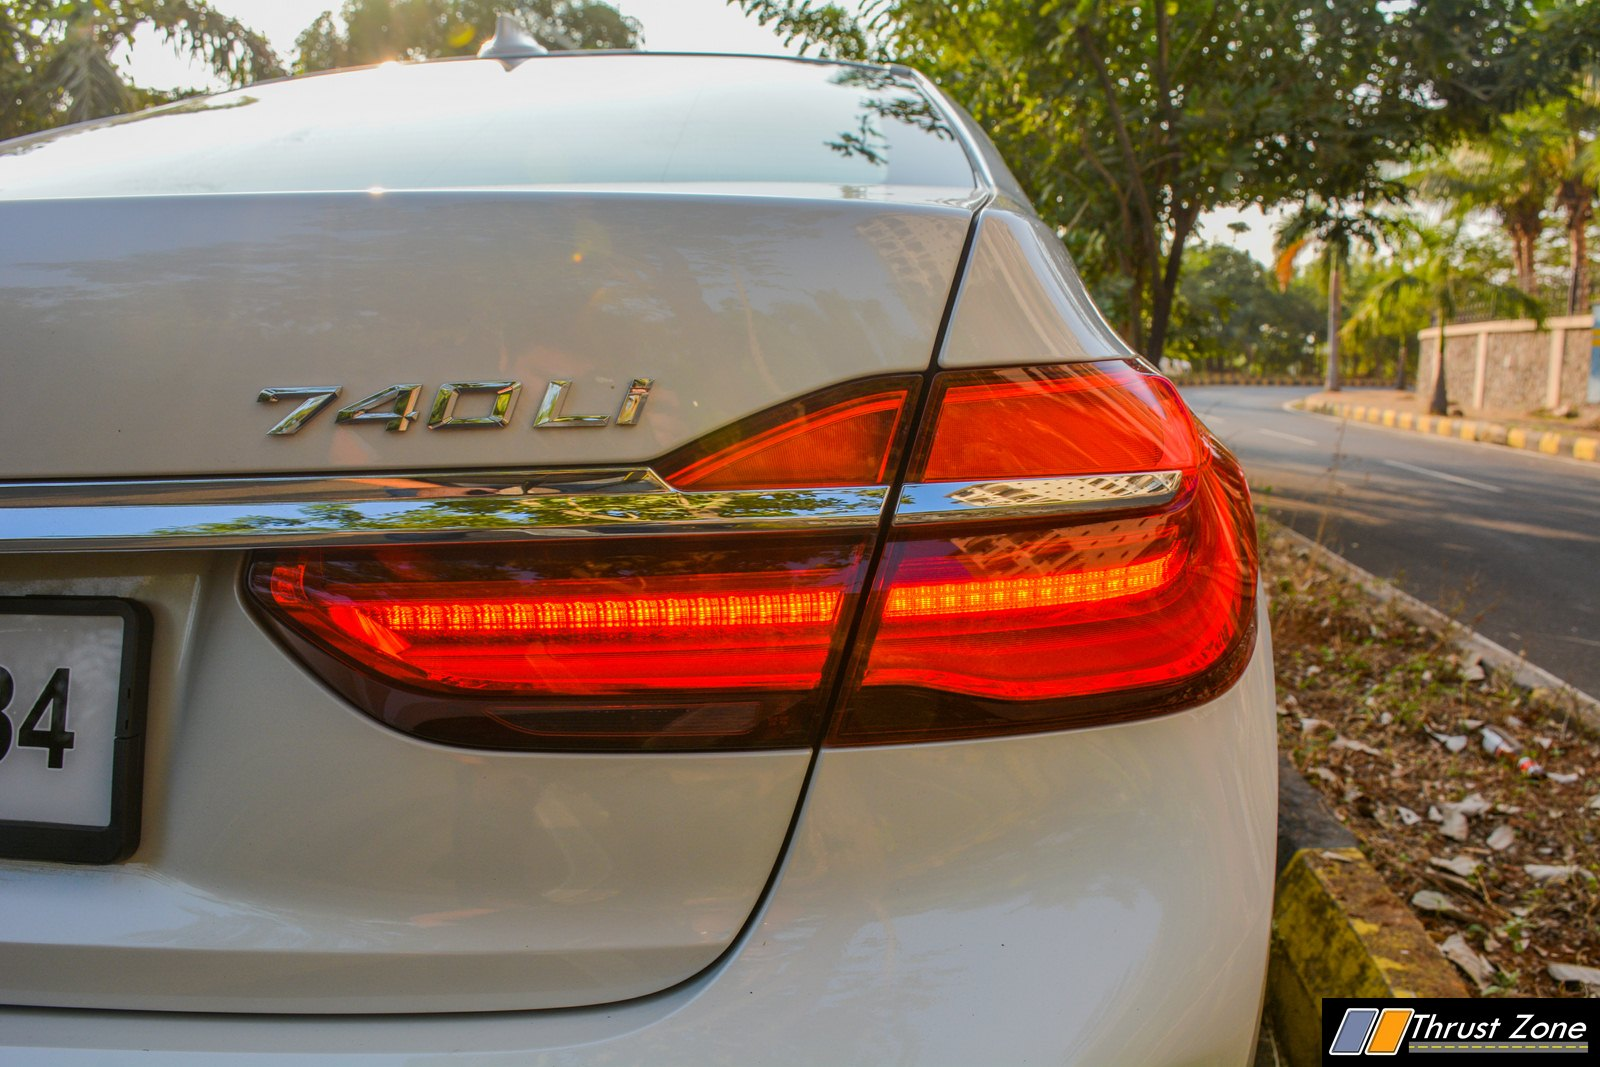 https://www.thrustzone.com/wp-content/uploads/2018/12/2018-BMW-7-SERIES-740i-INDIA-Review-25.jpg